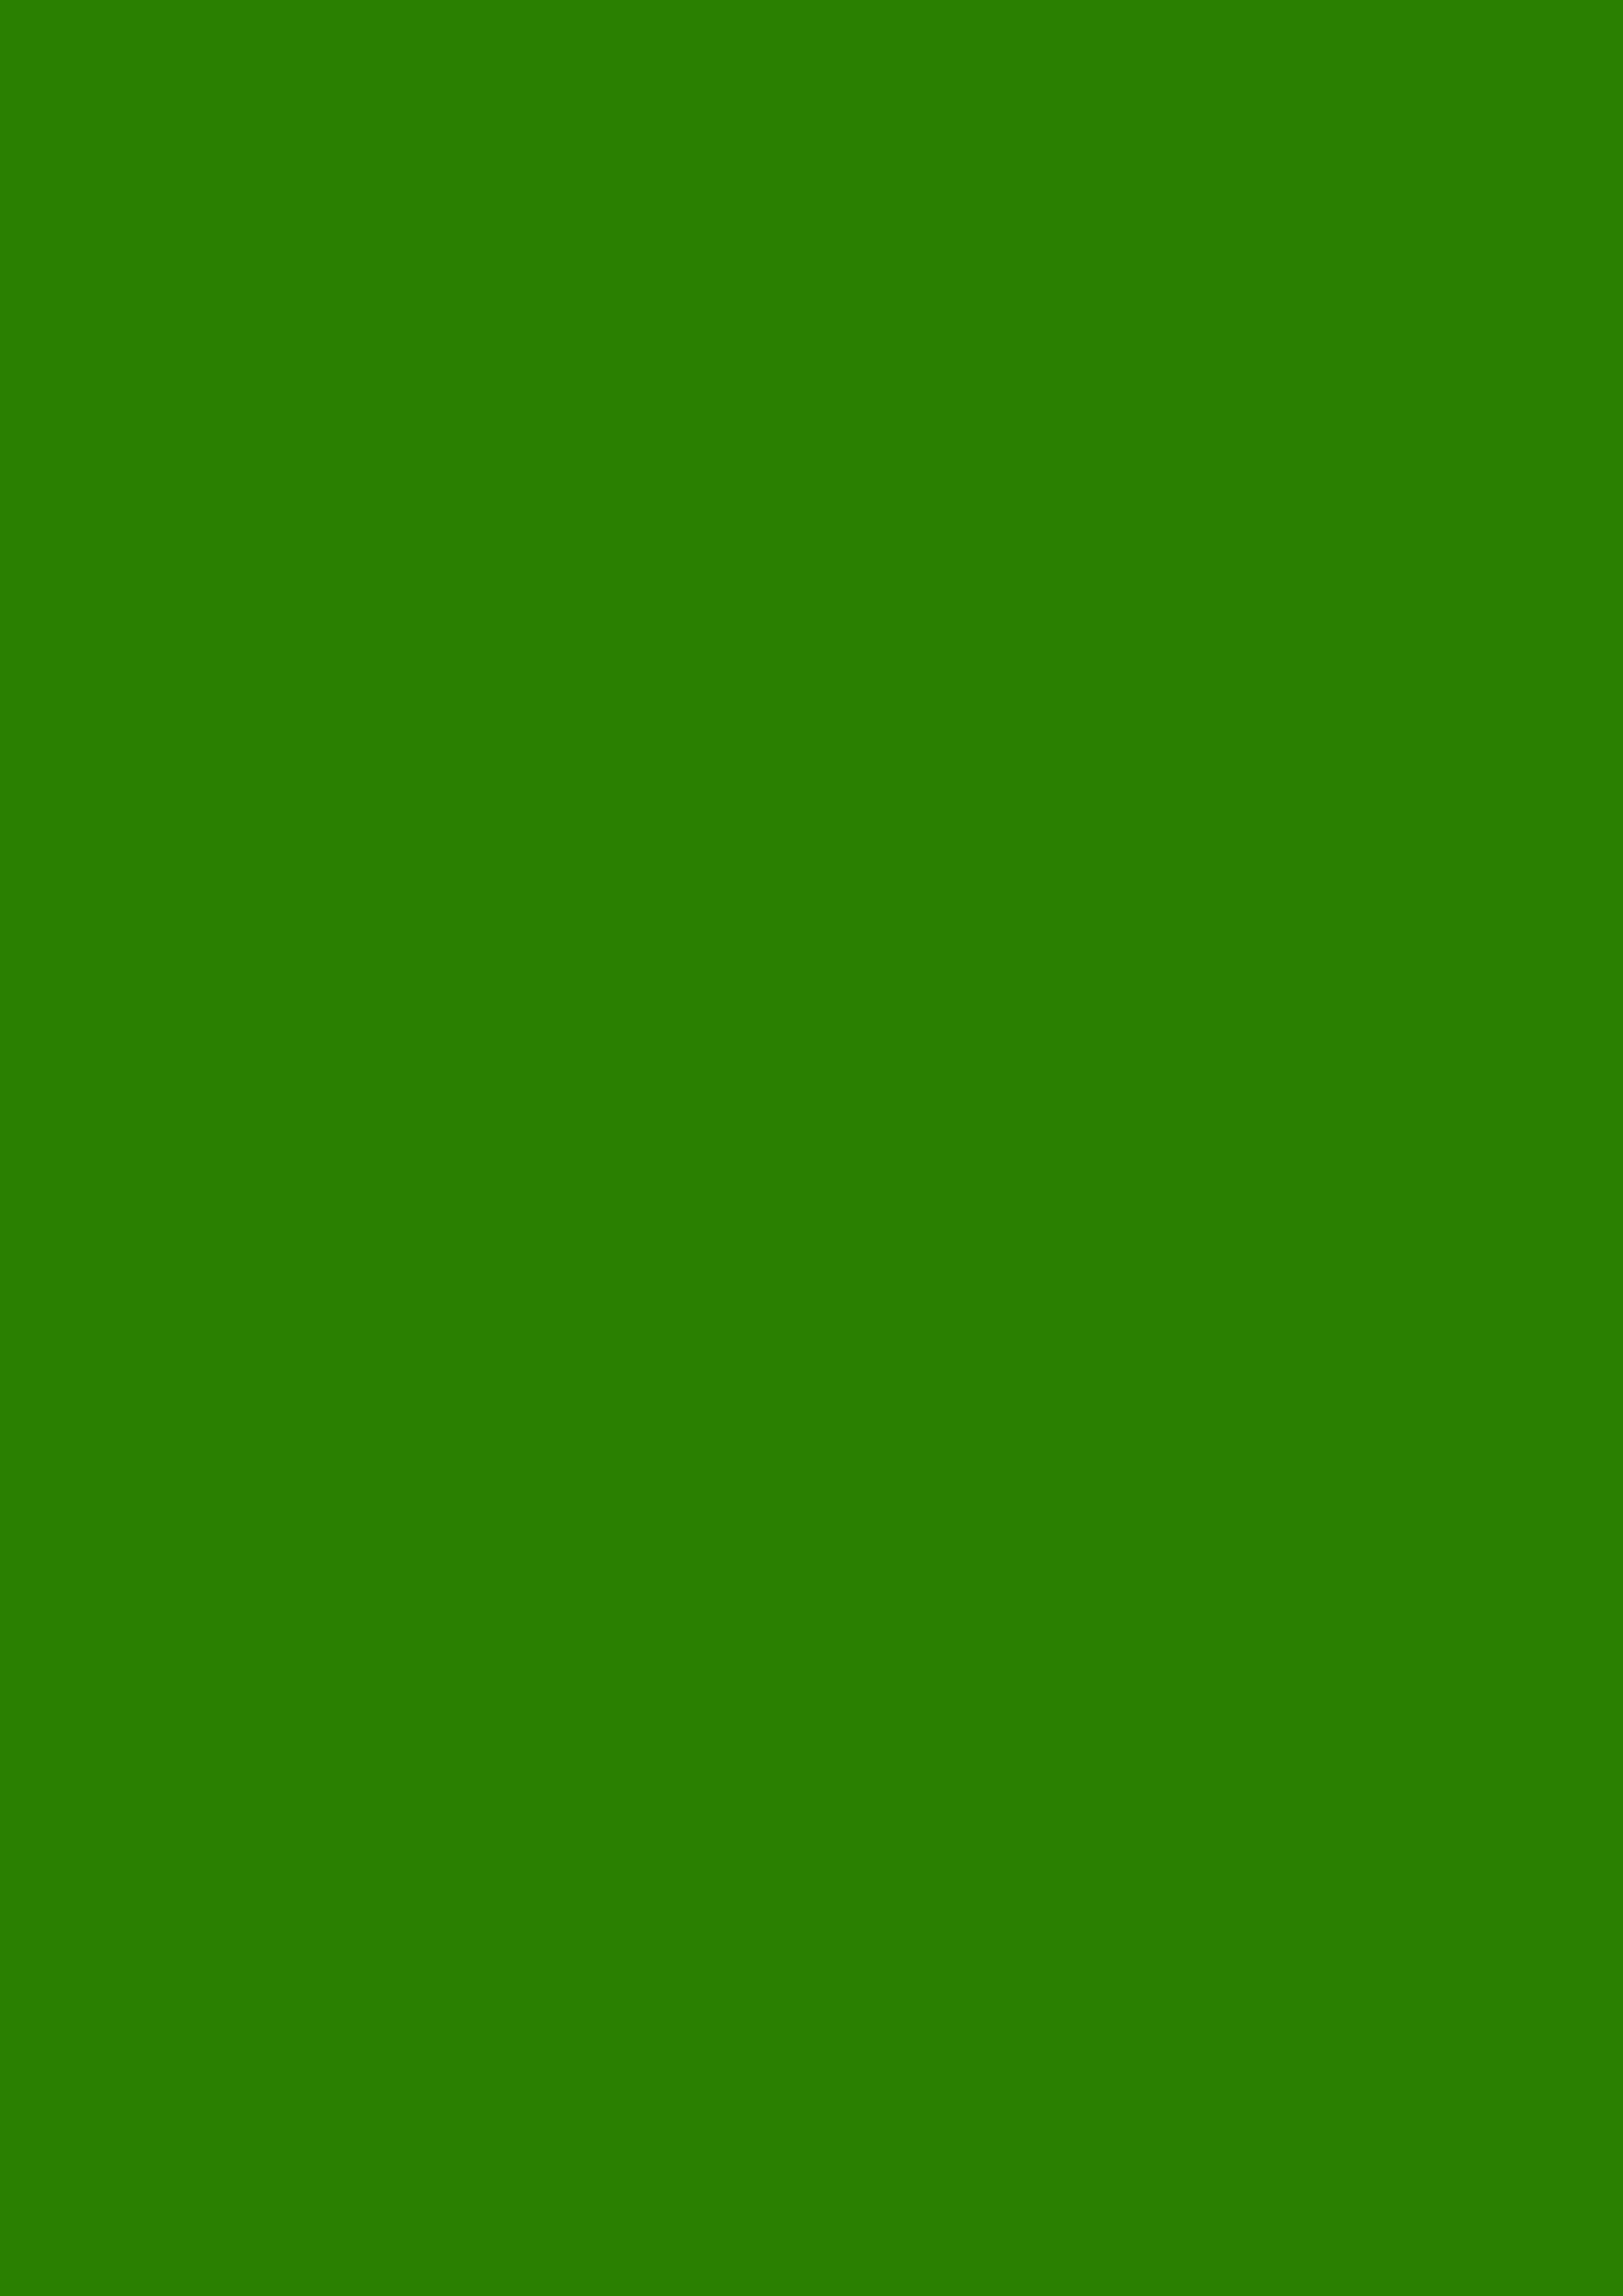 2480x3508 Napier Green Solid Color Background